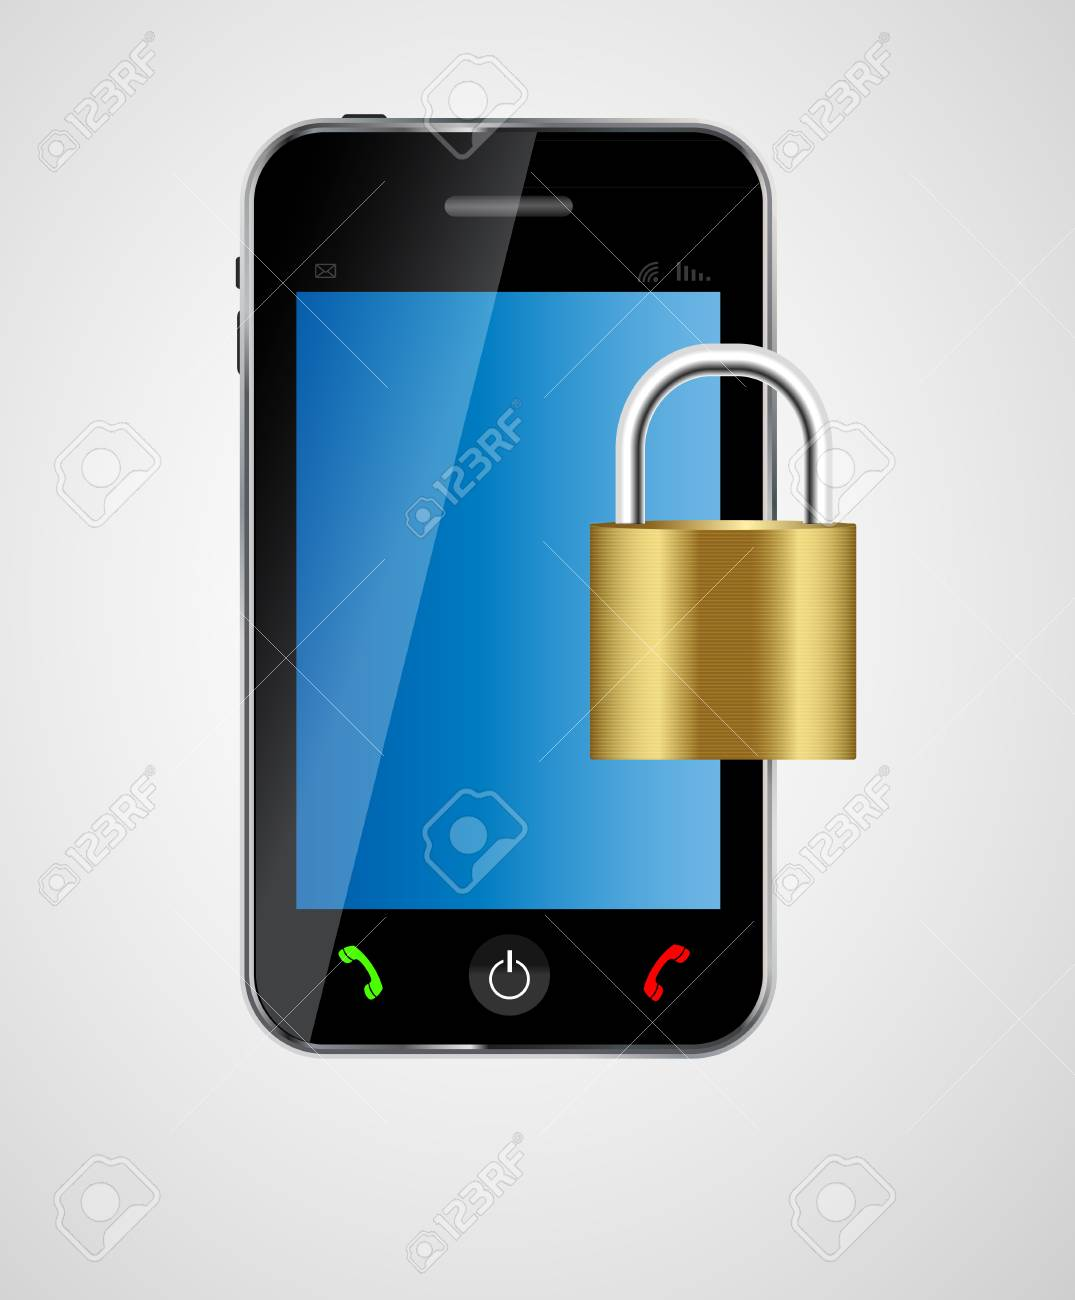 security phone concept vector illustration Stock Vector - 20228047